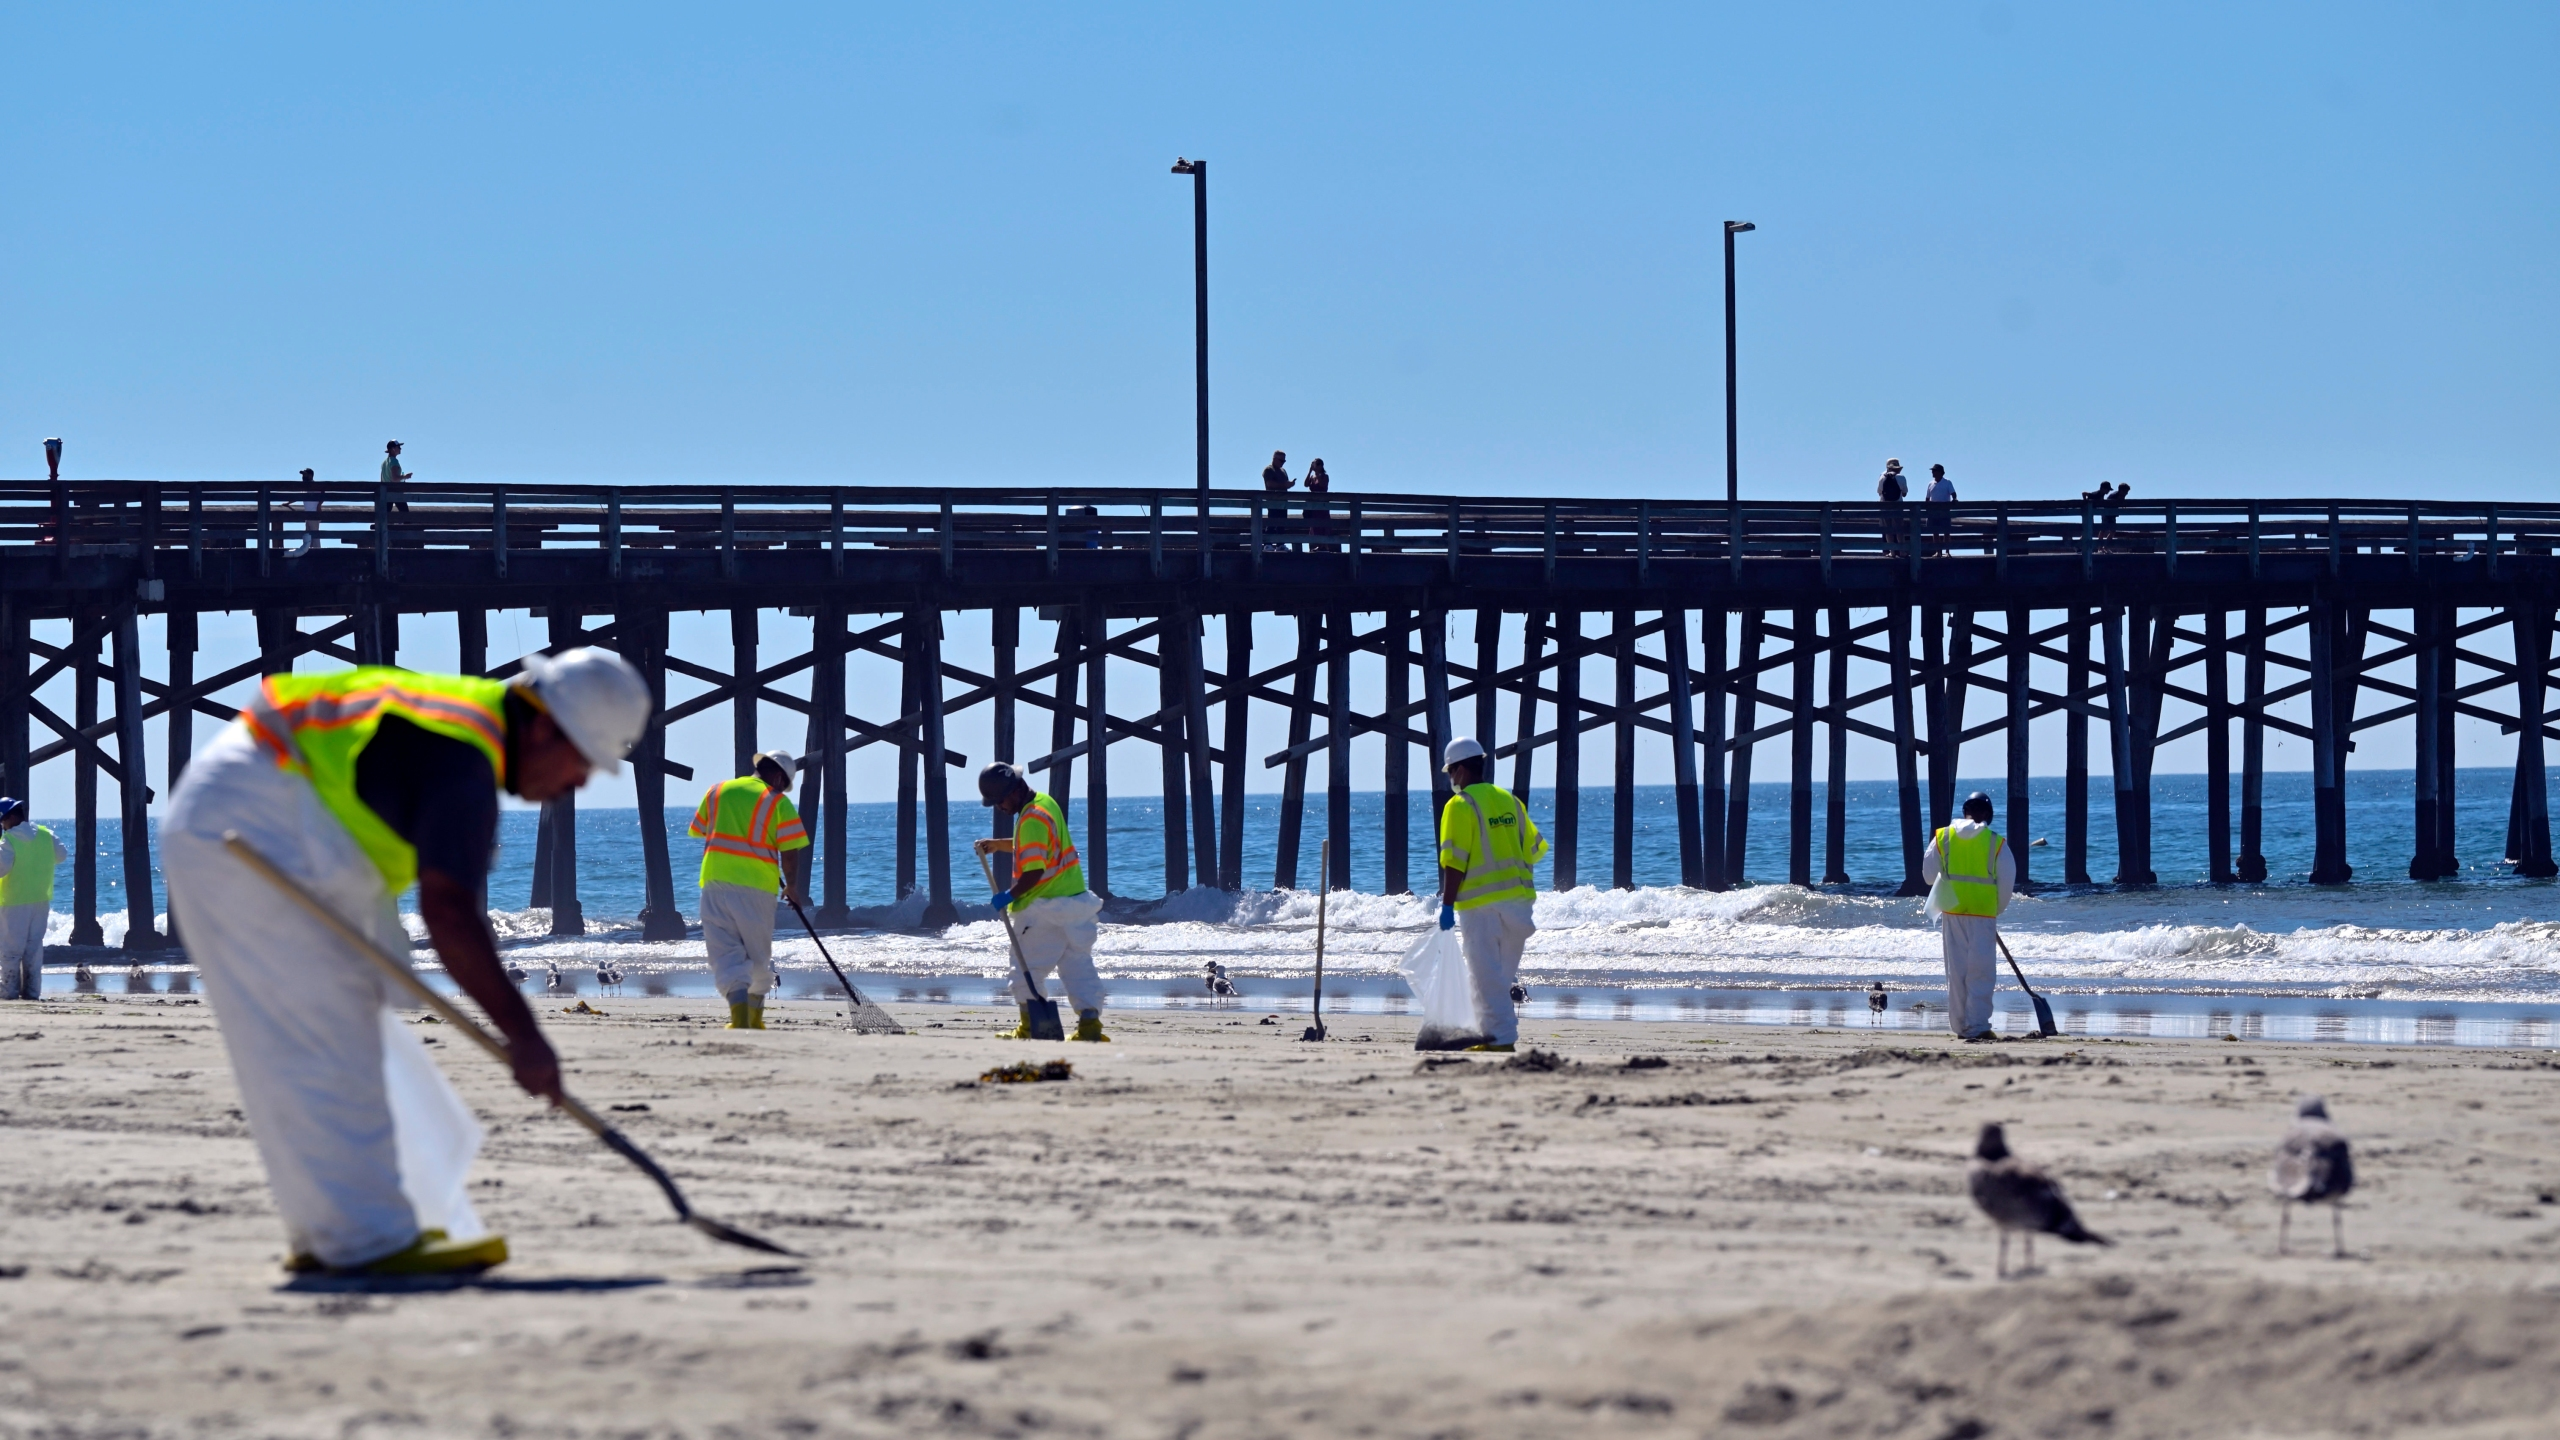 Workers clean oil from the sand, south of the pier in Newport Beach on Oct. 5, 2021. (Jeff Gritchen / The Orange County Register via Associated Press)